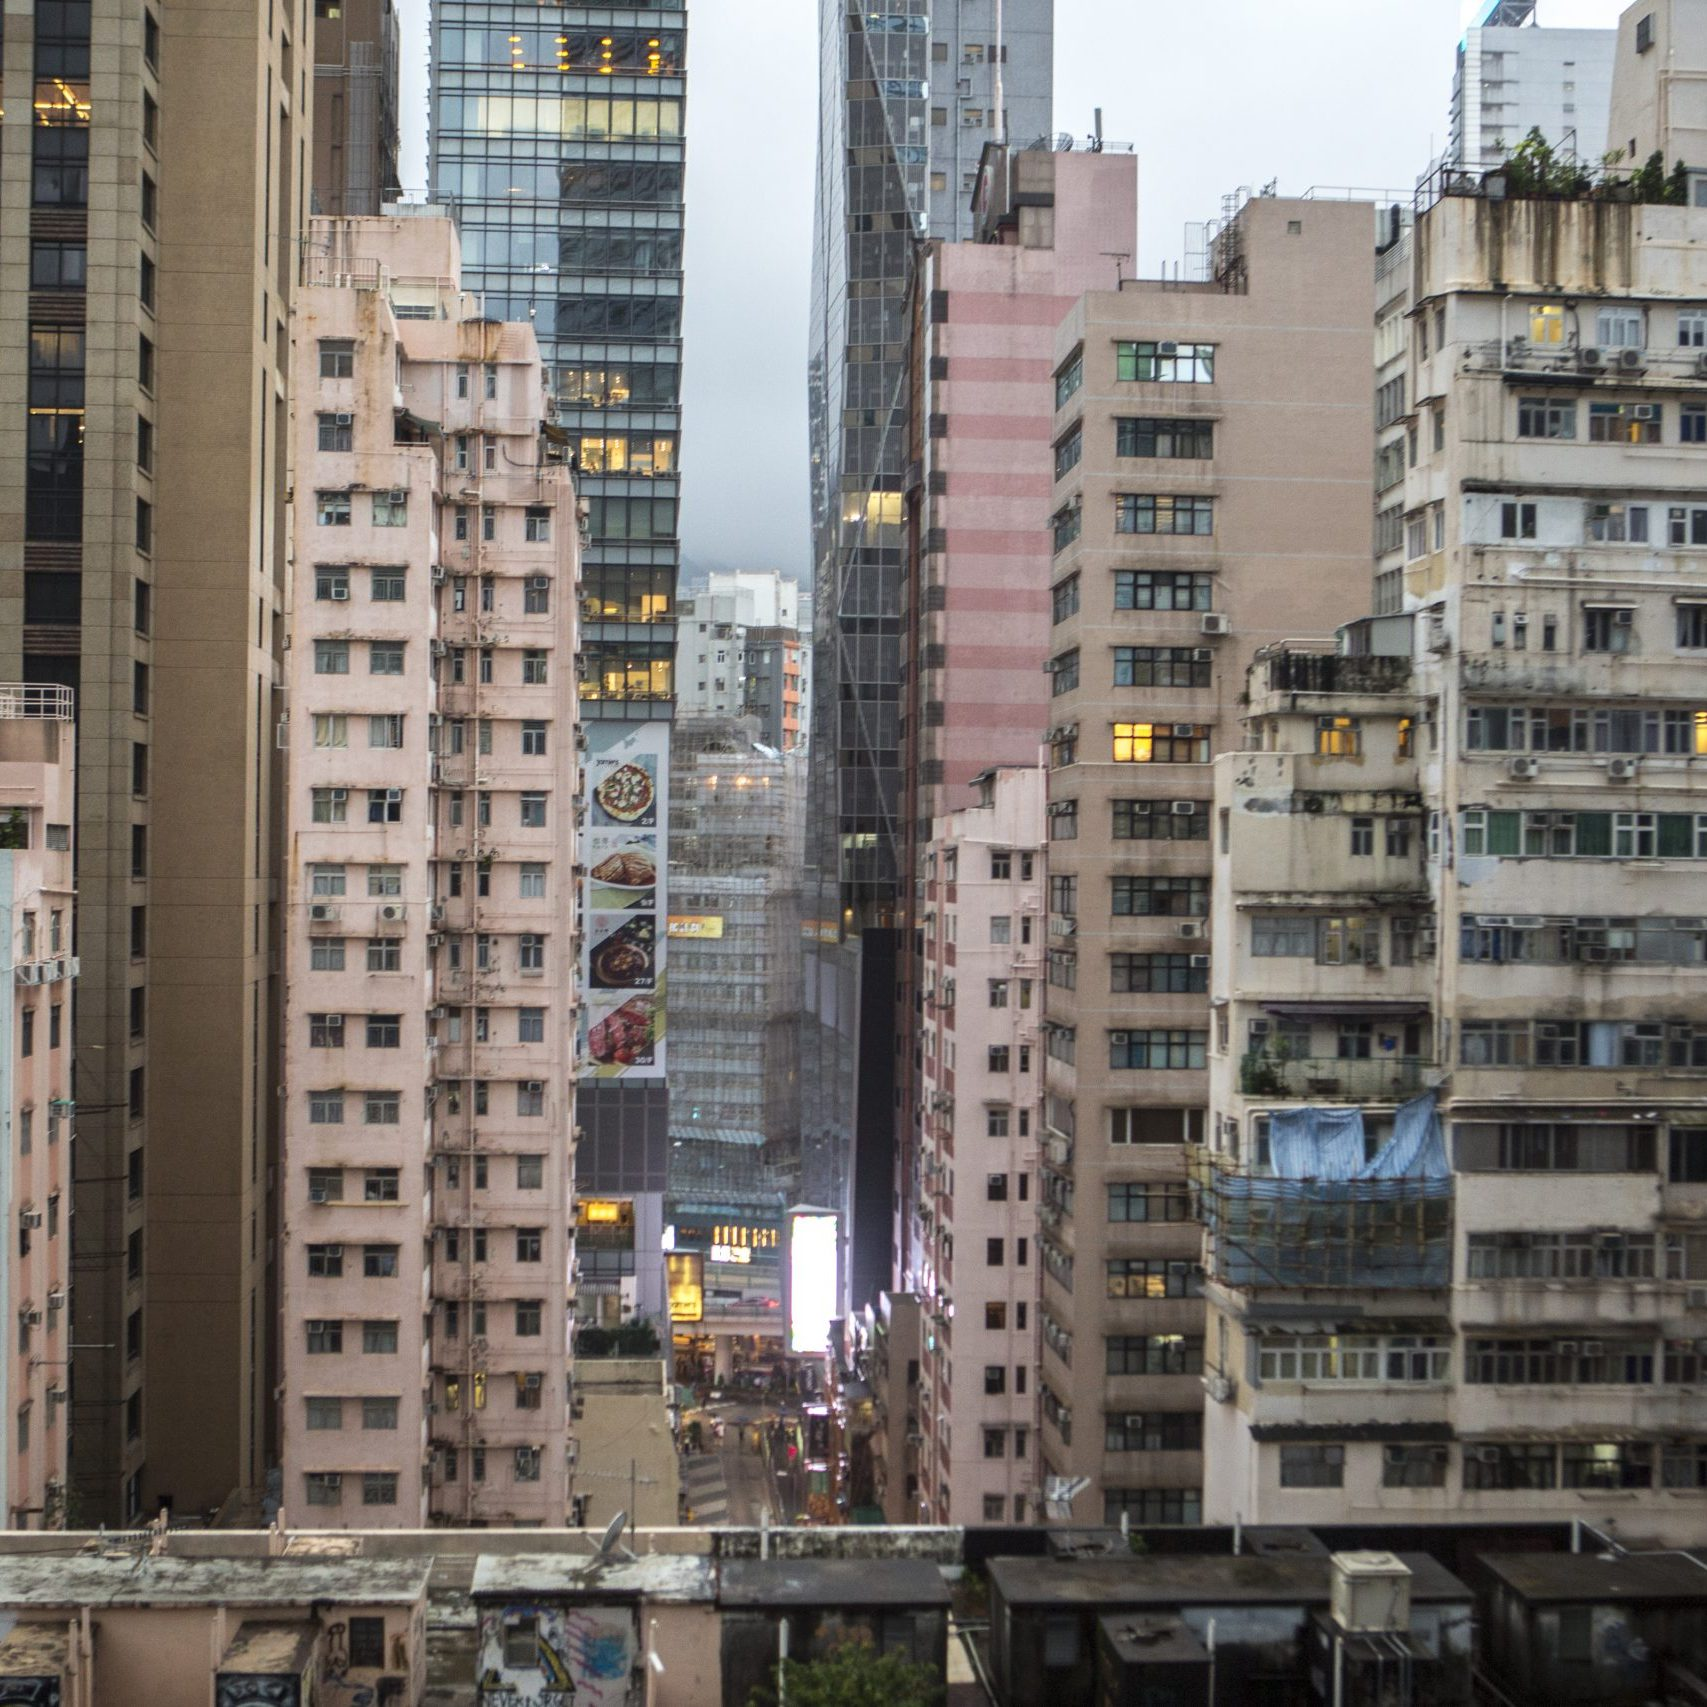 According to studies conducted by the Hong Kong Observatory, urbanization contributes about 50% of the warming in cities like Hong Kong. Concrete buildings store heat in the day and release it in the night, unbalancing the normal day and night cooling cycle. in addition, tall building block air circulation and reduce wind speed.